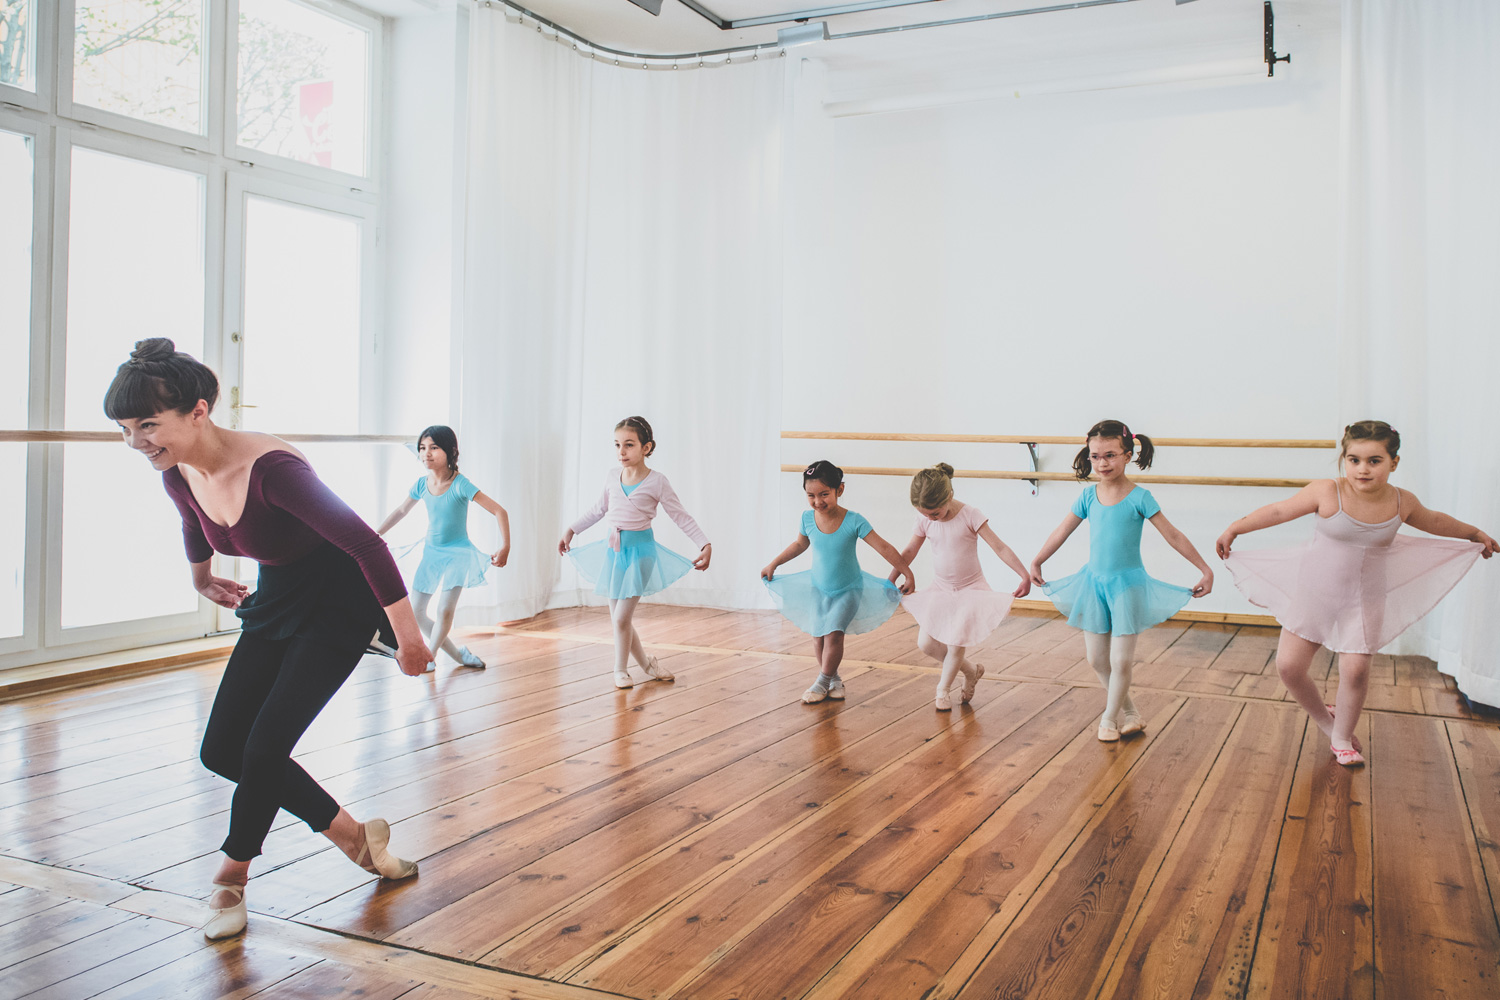 5 year-old girls in ballet class doing curtsy